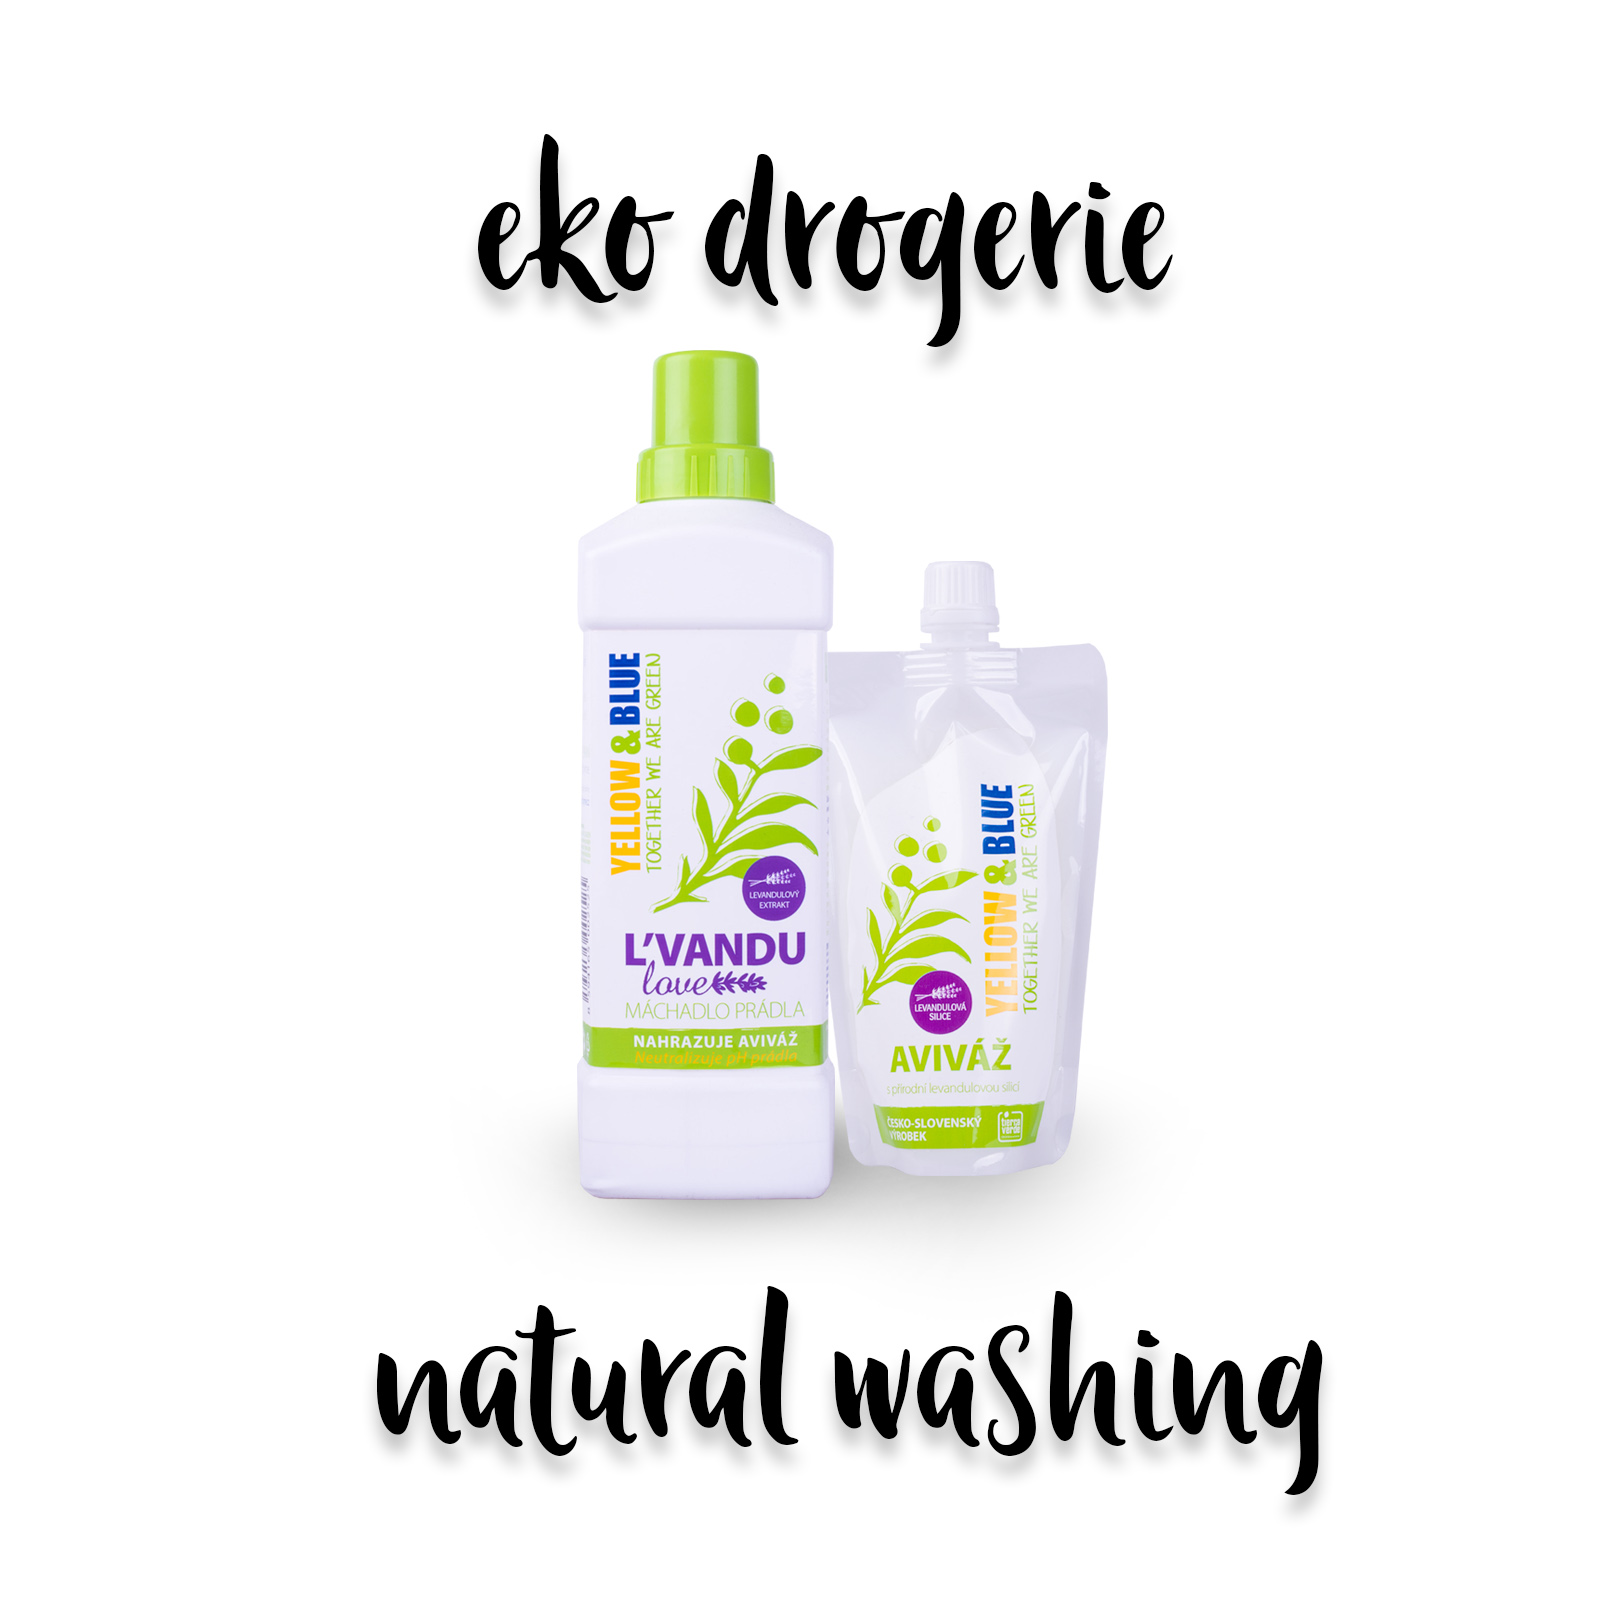 Eko drogerie (Natural washing)